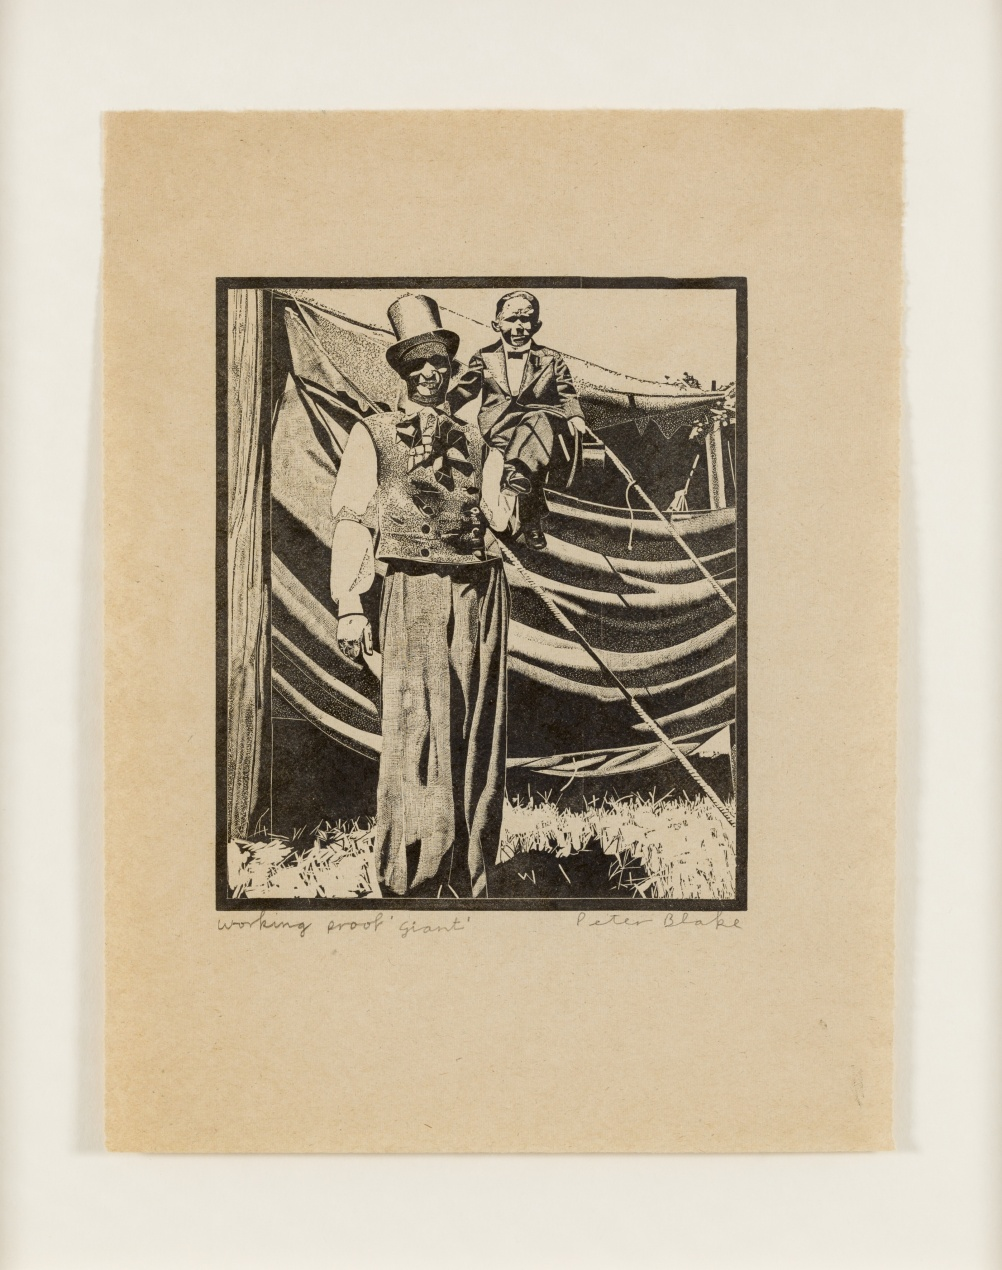 Giant from 1974-78 Side Show collection by Peter Blake